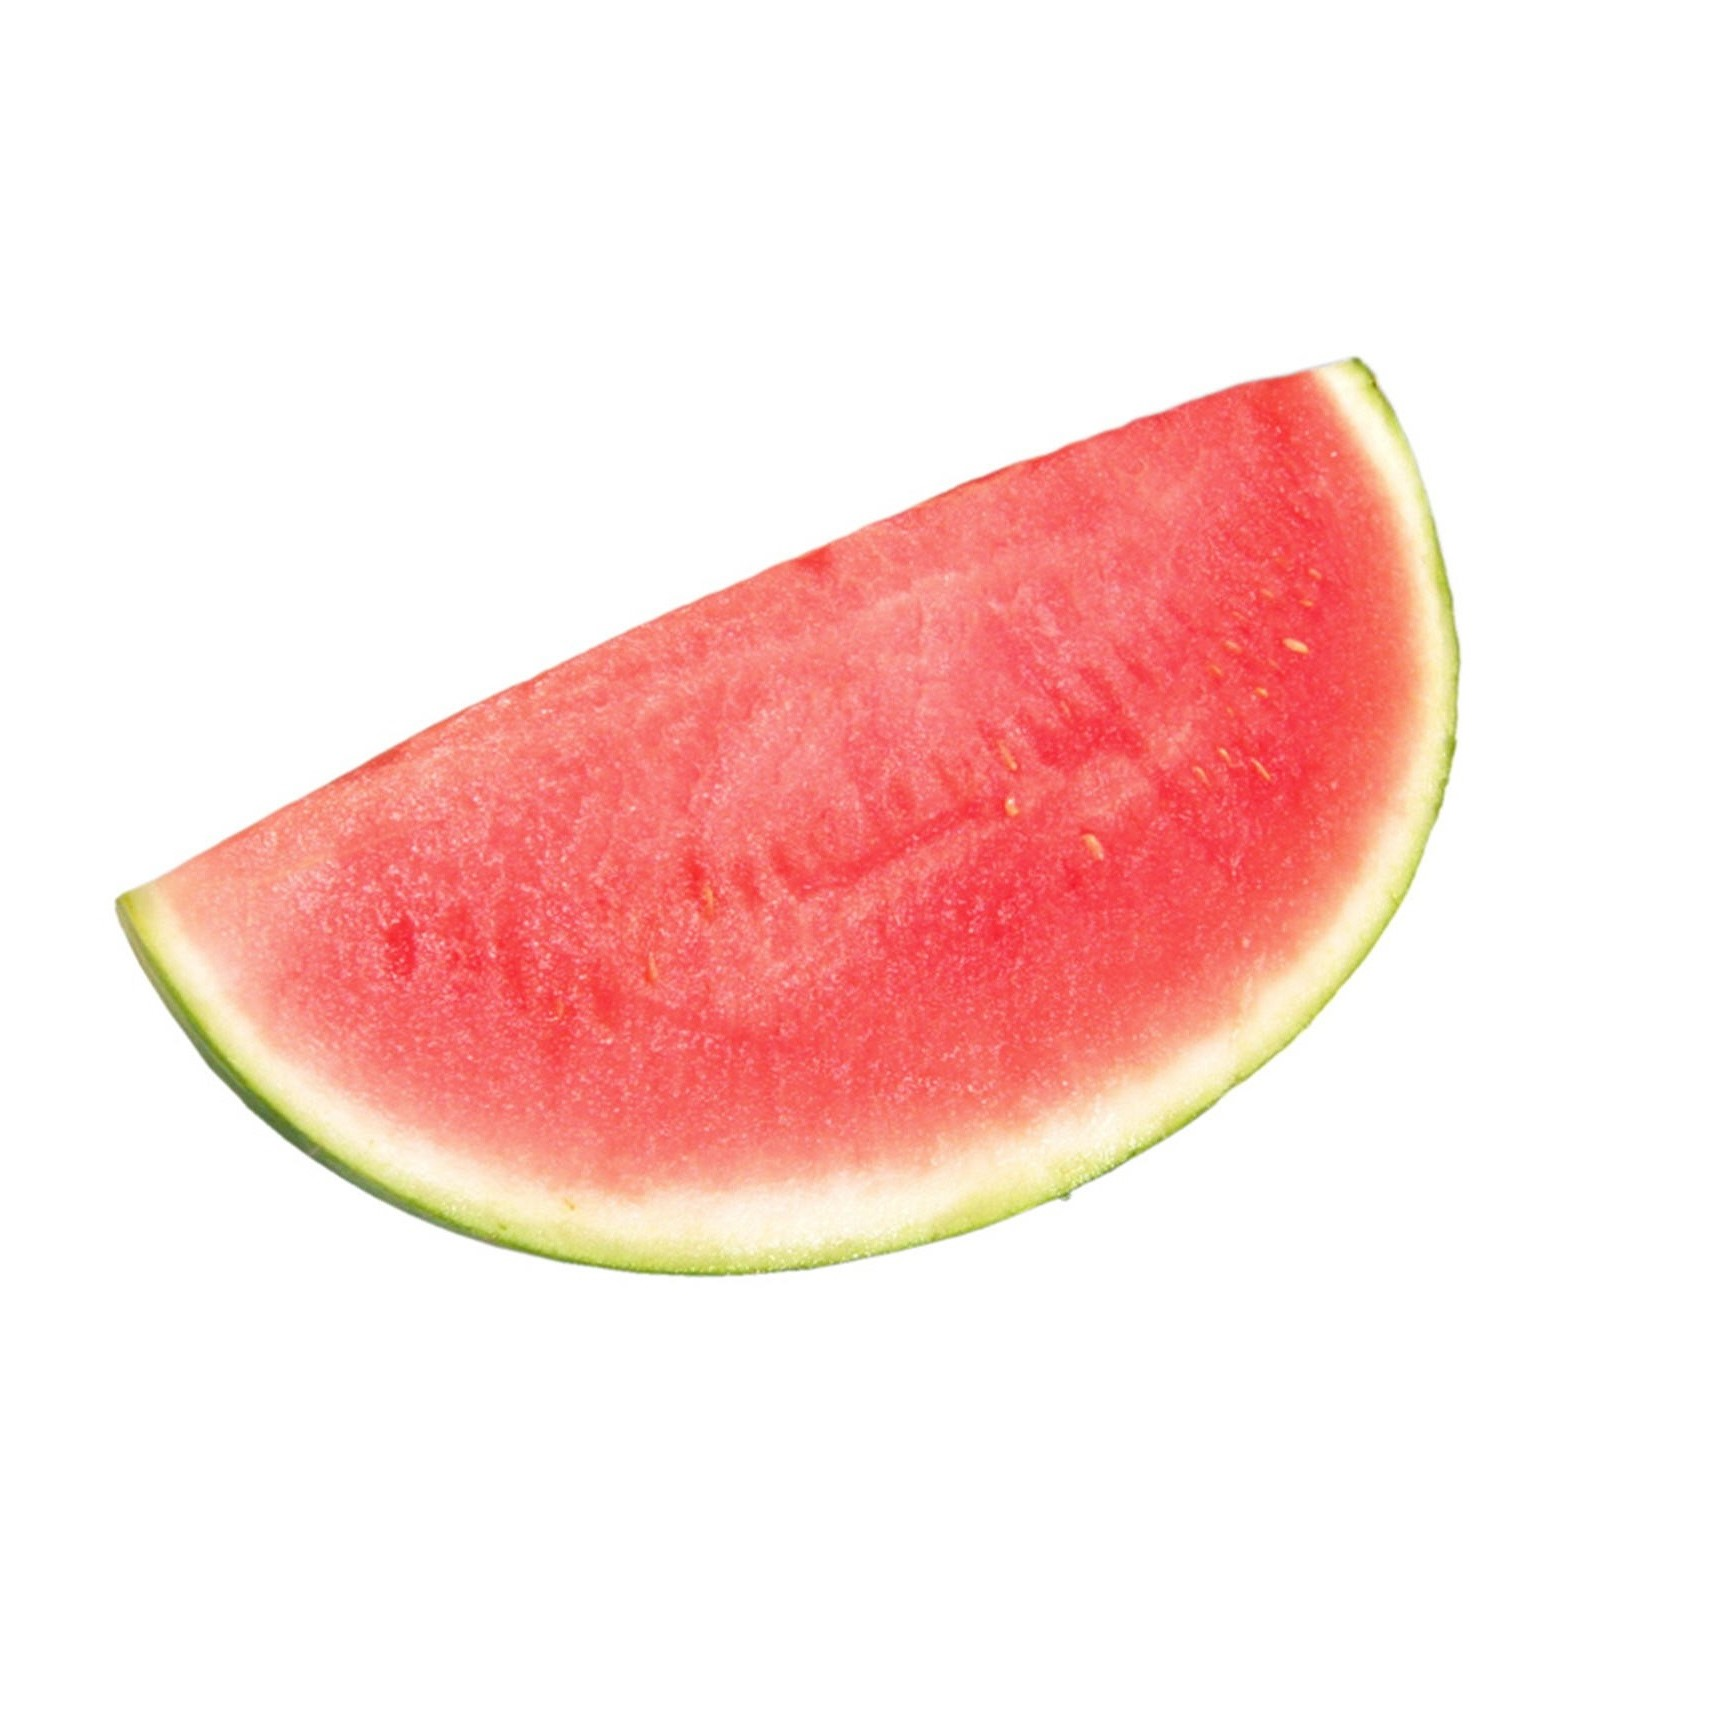 how to cut a watermelon with a quarter